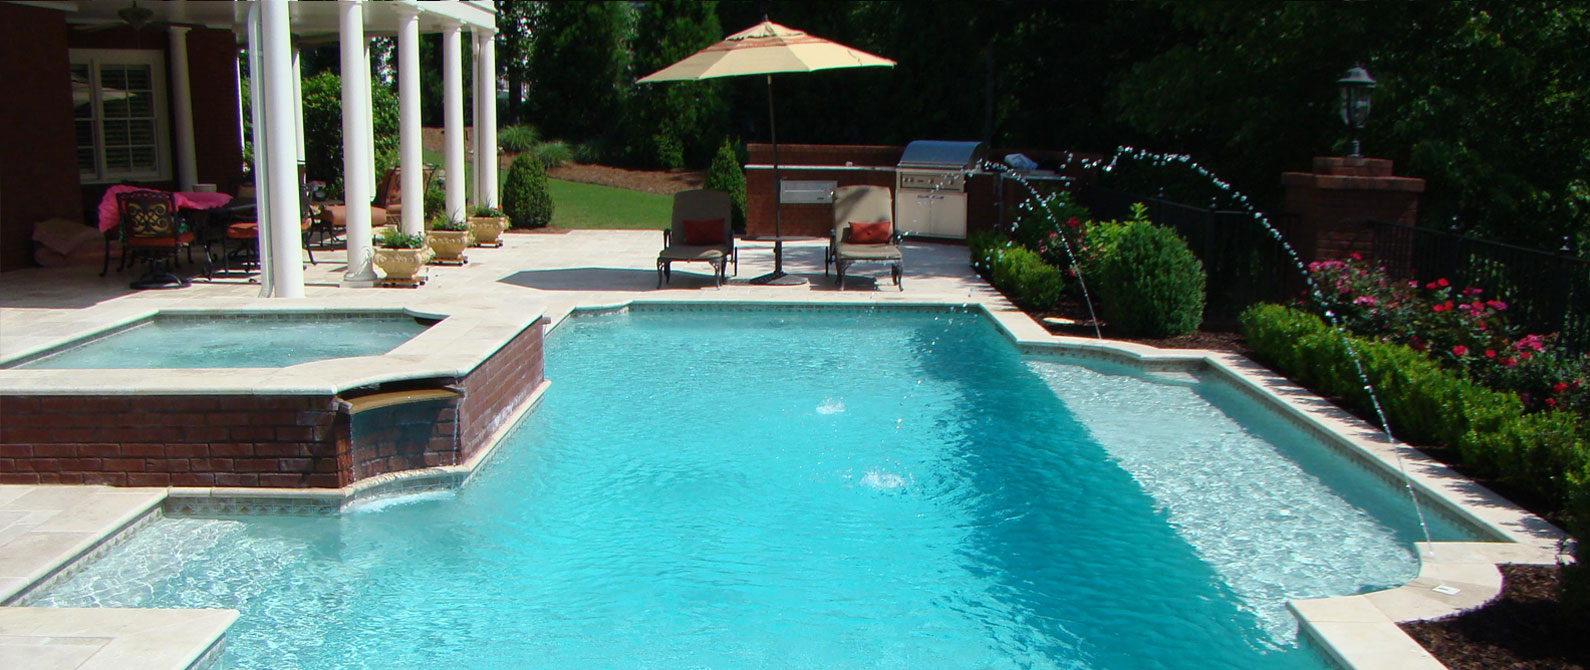 High Quality Pools and Spas  Atlanta Outdoor Designs Inc